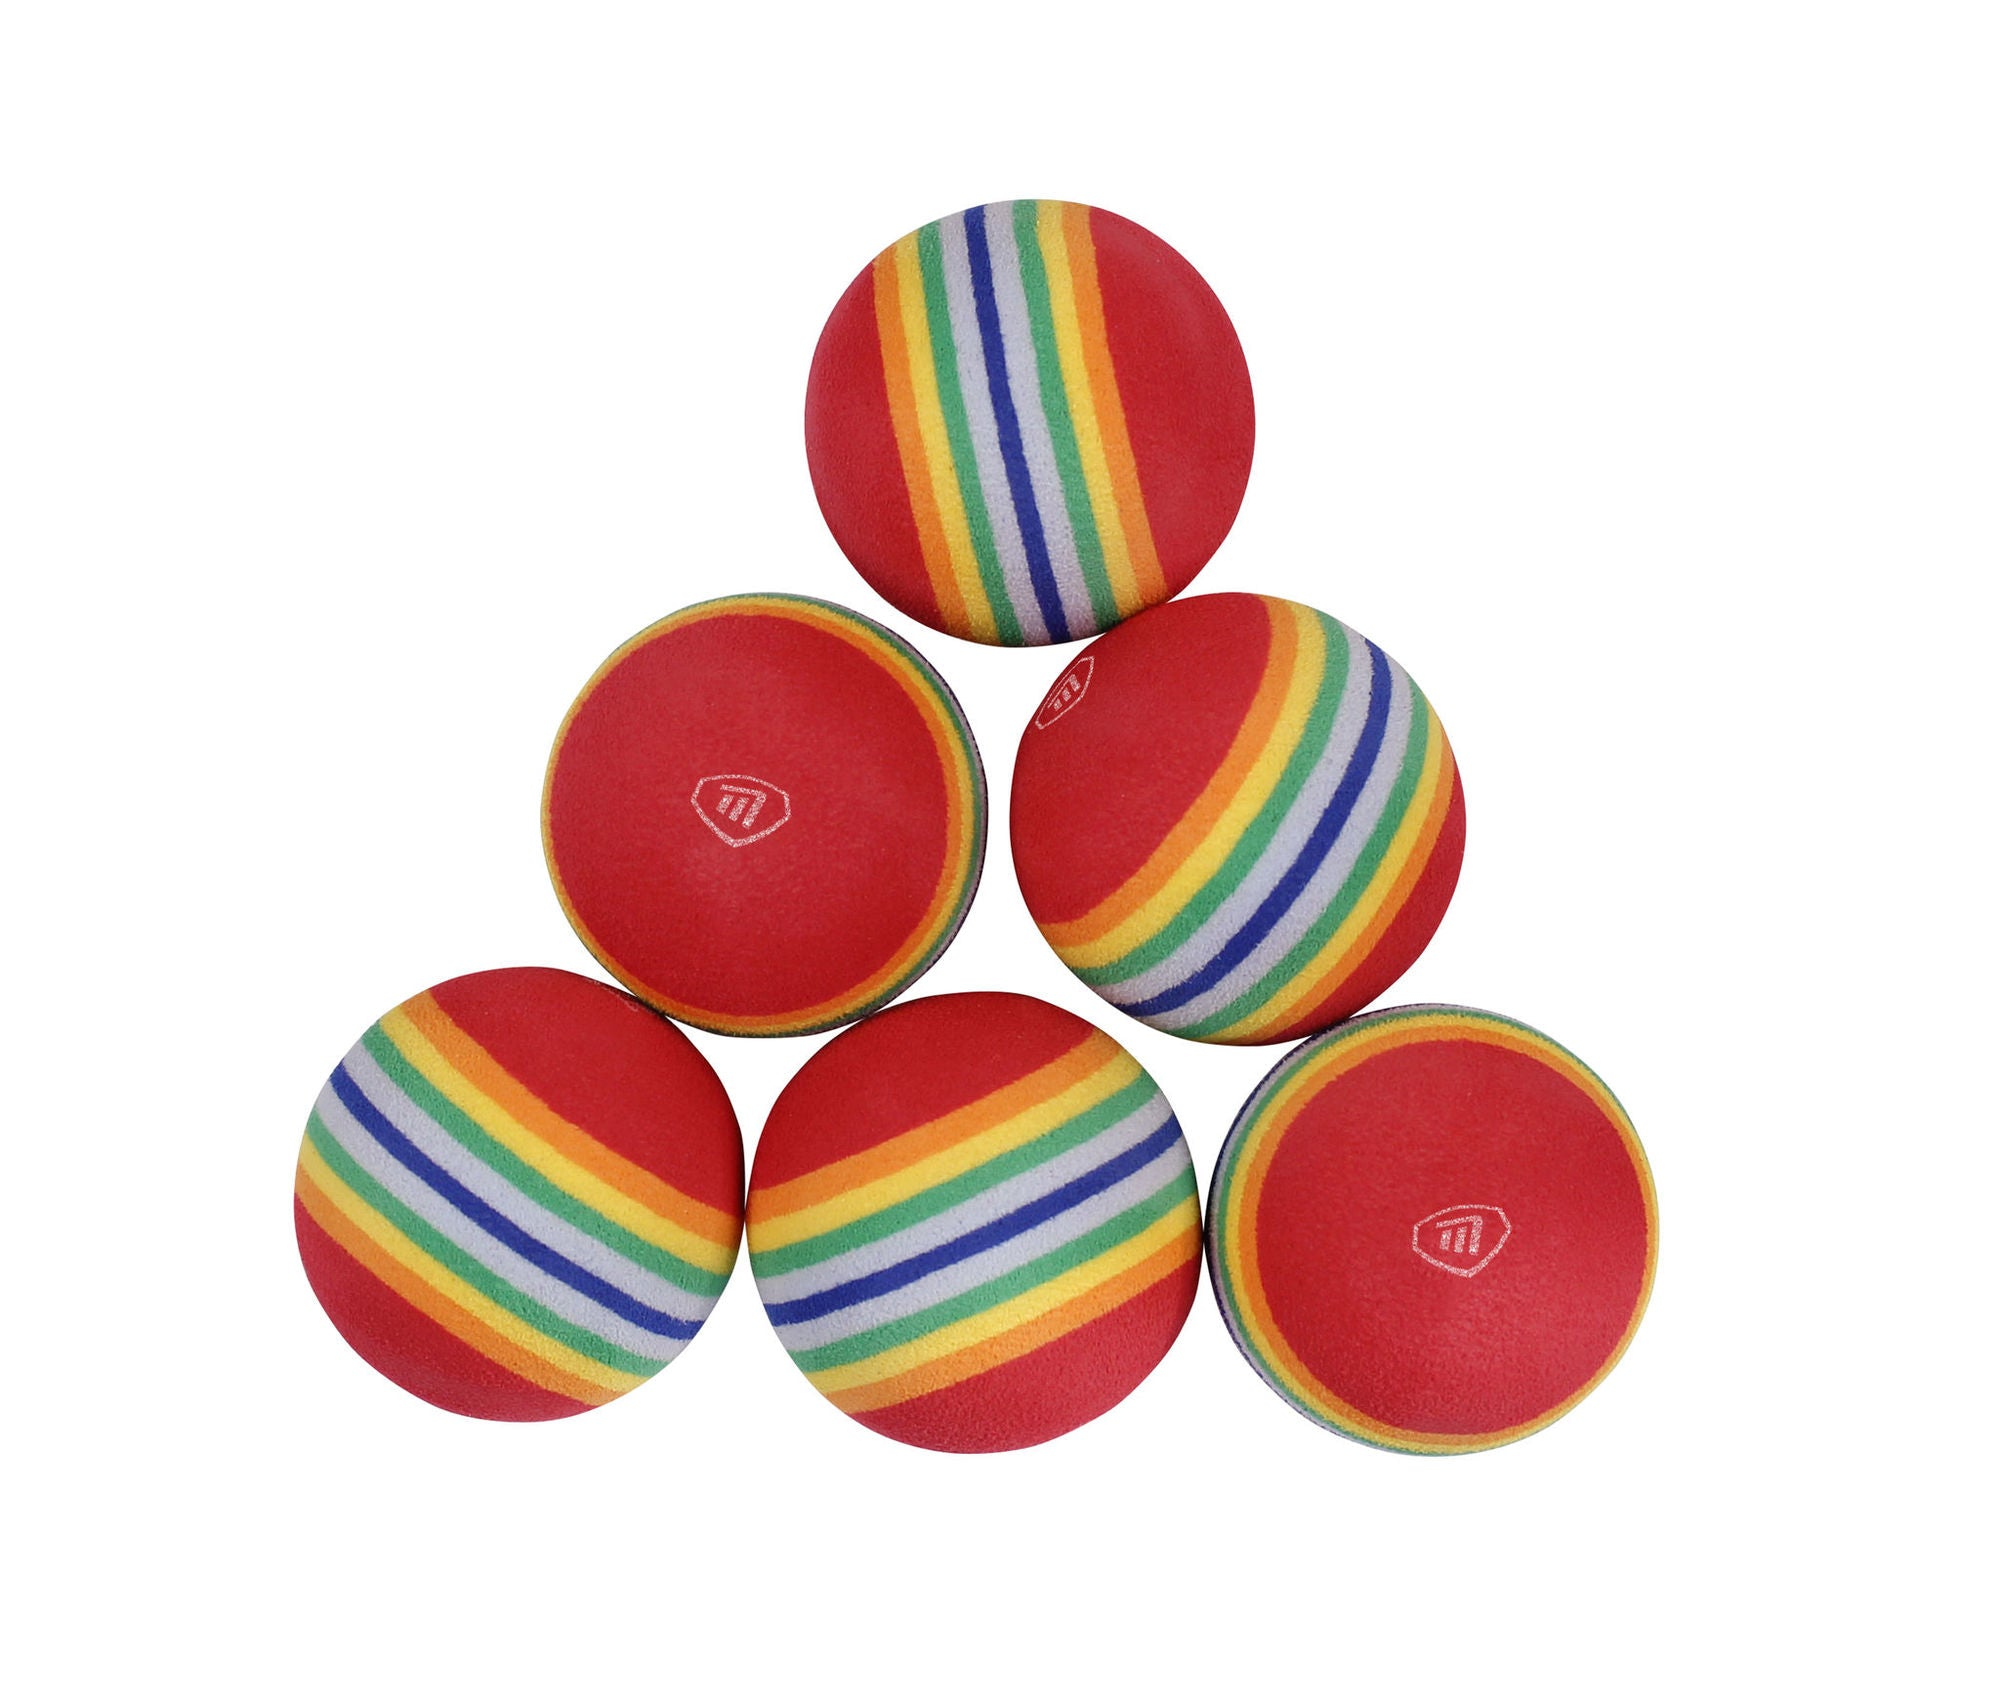 Foam Practice Balls pack of 6 - Event Stuff Ltd Owns Putterfingers.com!